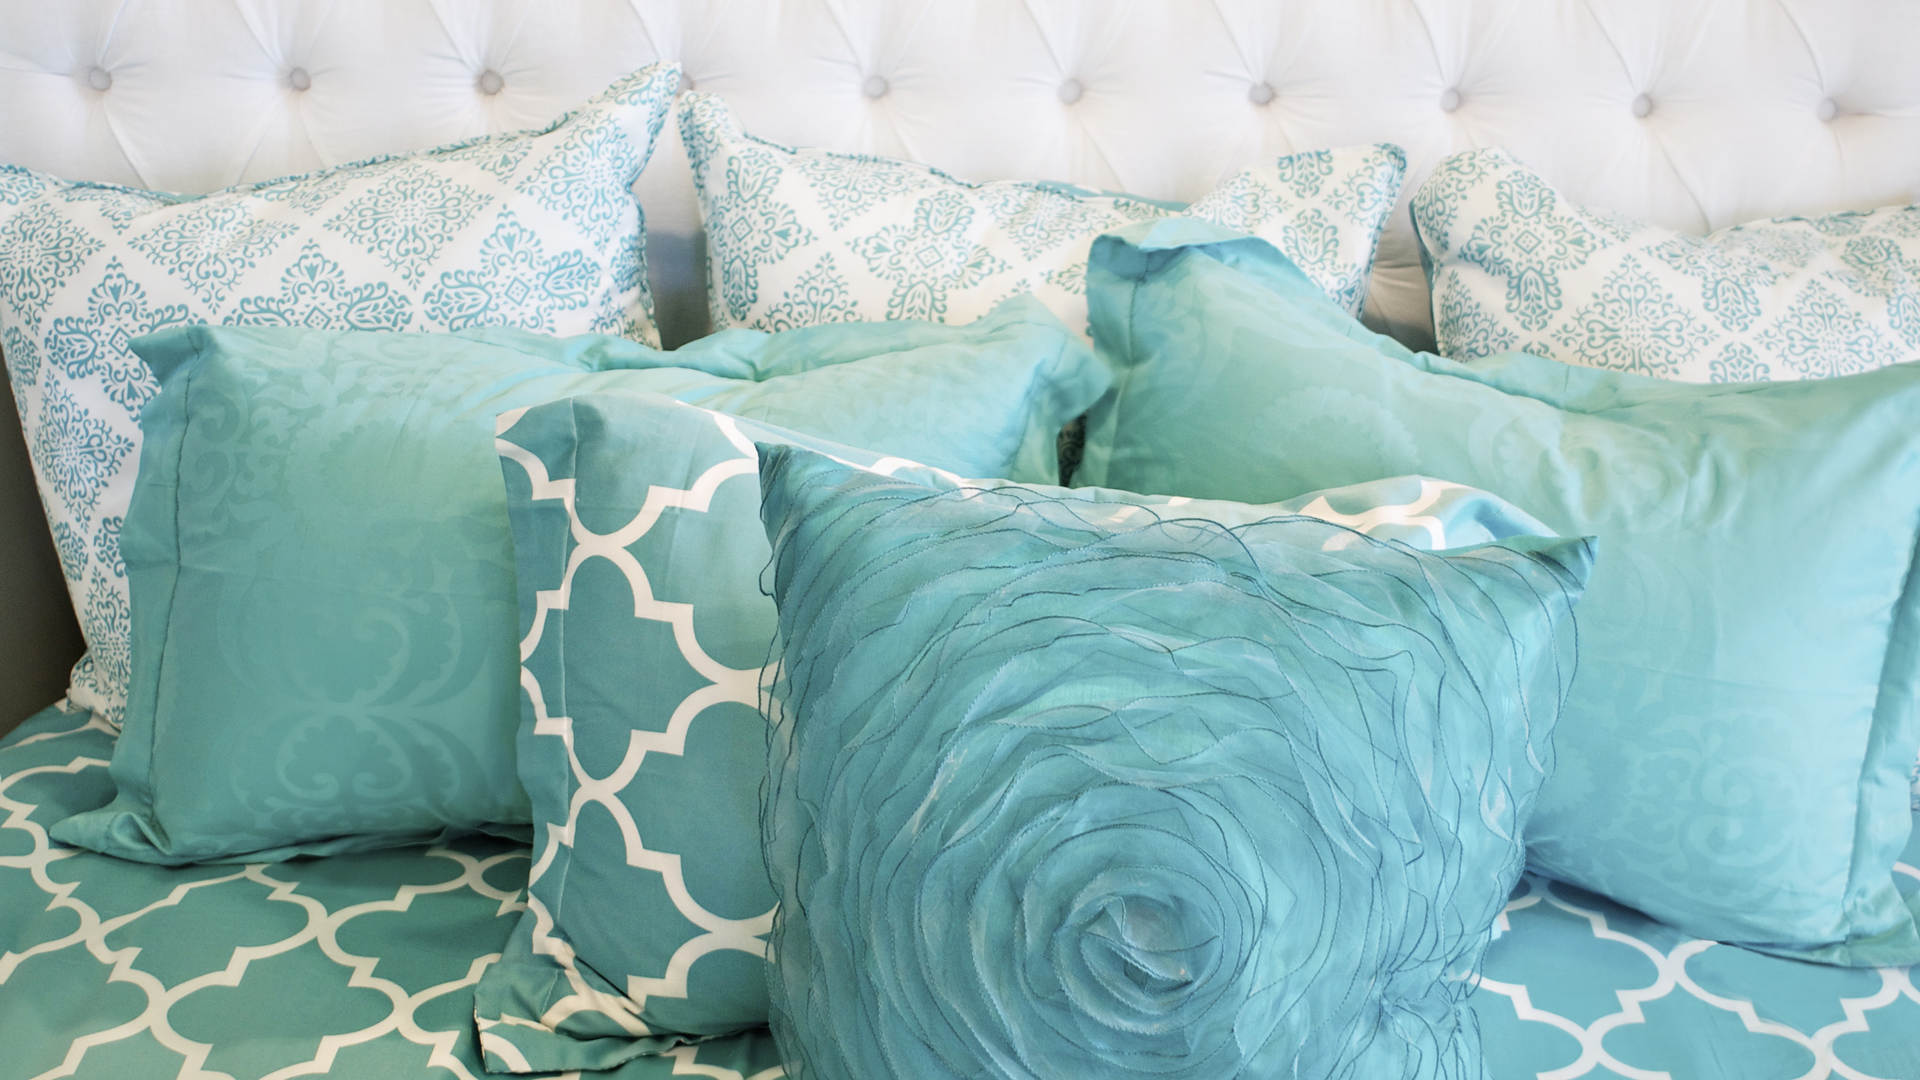 Closeup photo of teal cushions on bed.jp